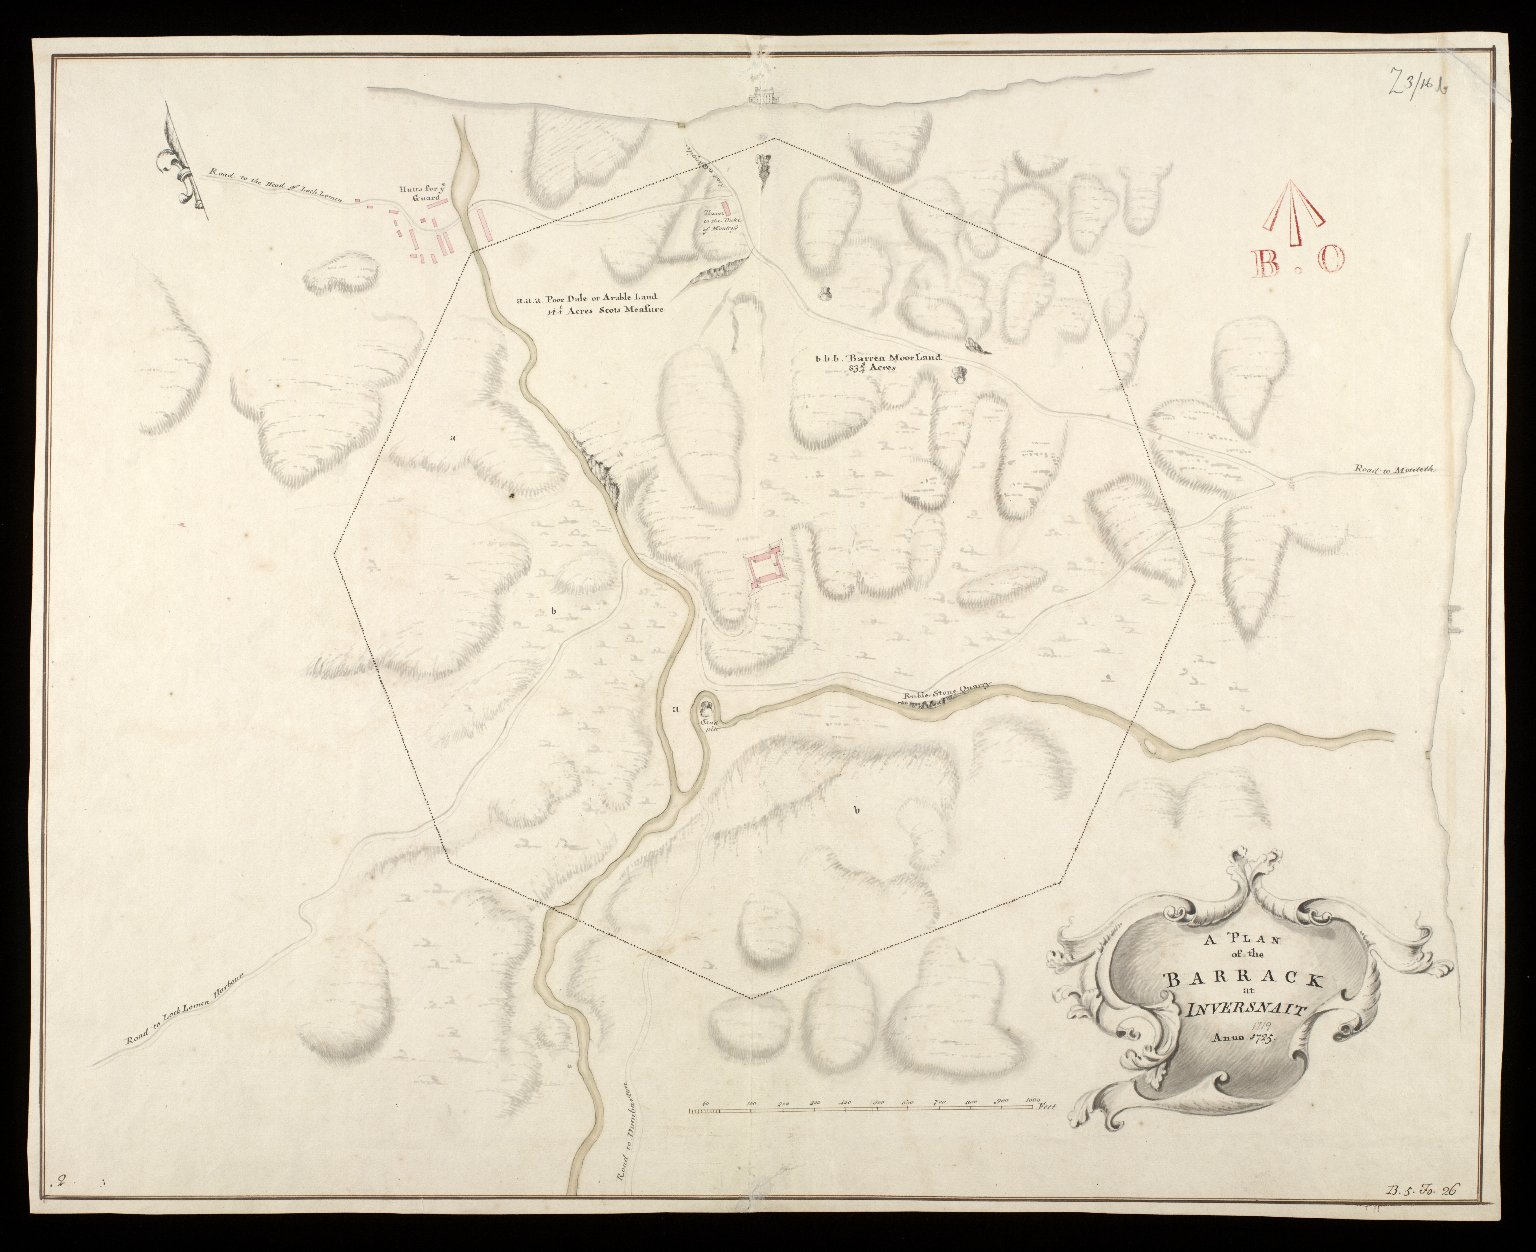 A Plan of the barrack at Inversnait [i.e. Inversnaid] 1719 [copied in] anno 1725 [1 of 1]